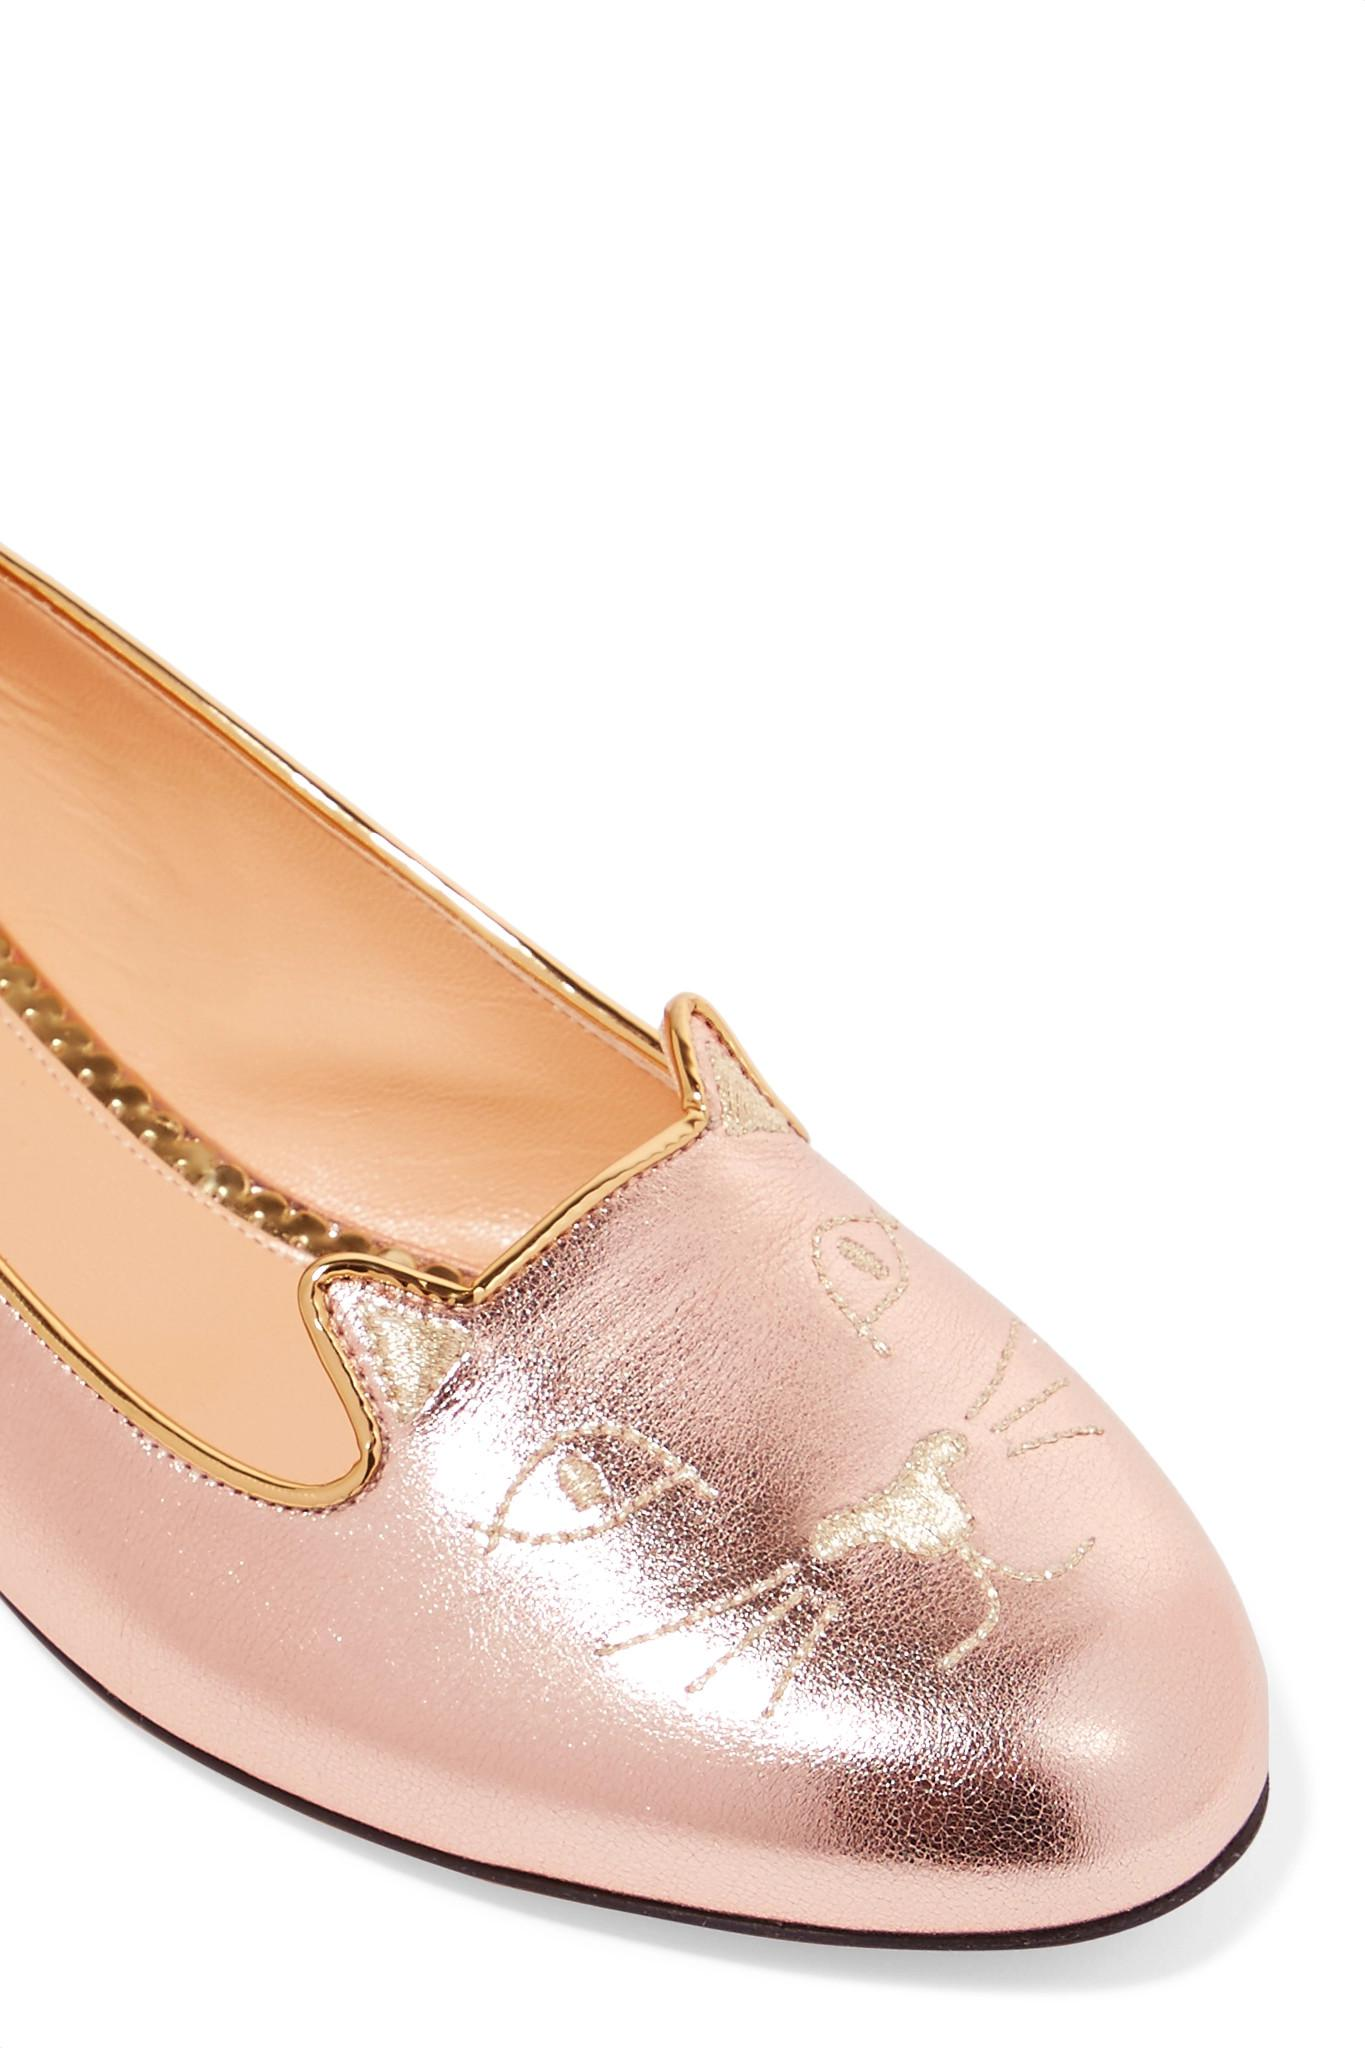 Kitty Embroidered Metallic Leather Slippers - Pink Charlotte Olympia VhGX7